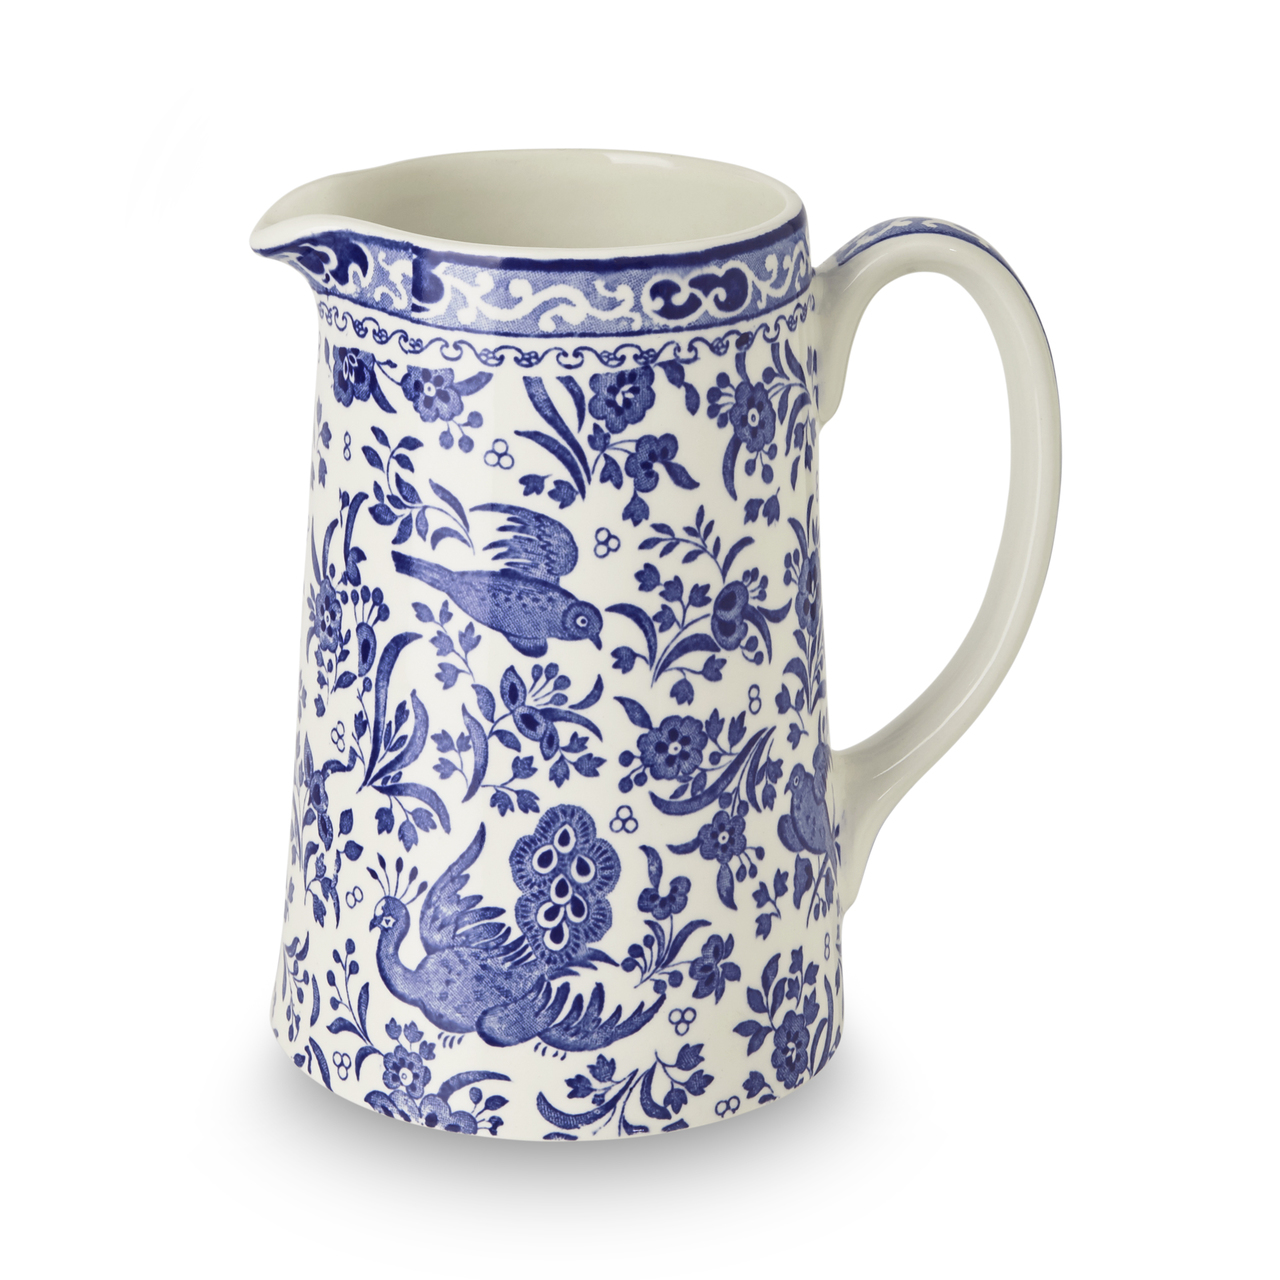 Burleigh Blue Regal Peacock | Beautiful china dinnerware to adorn your tablescapes and add to your Sasha Nicholas wedding & gift registry